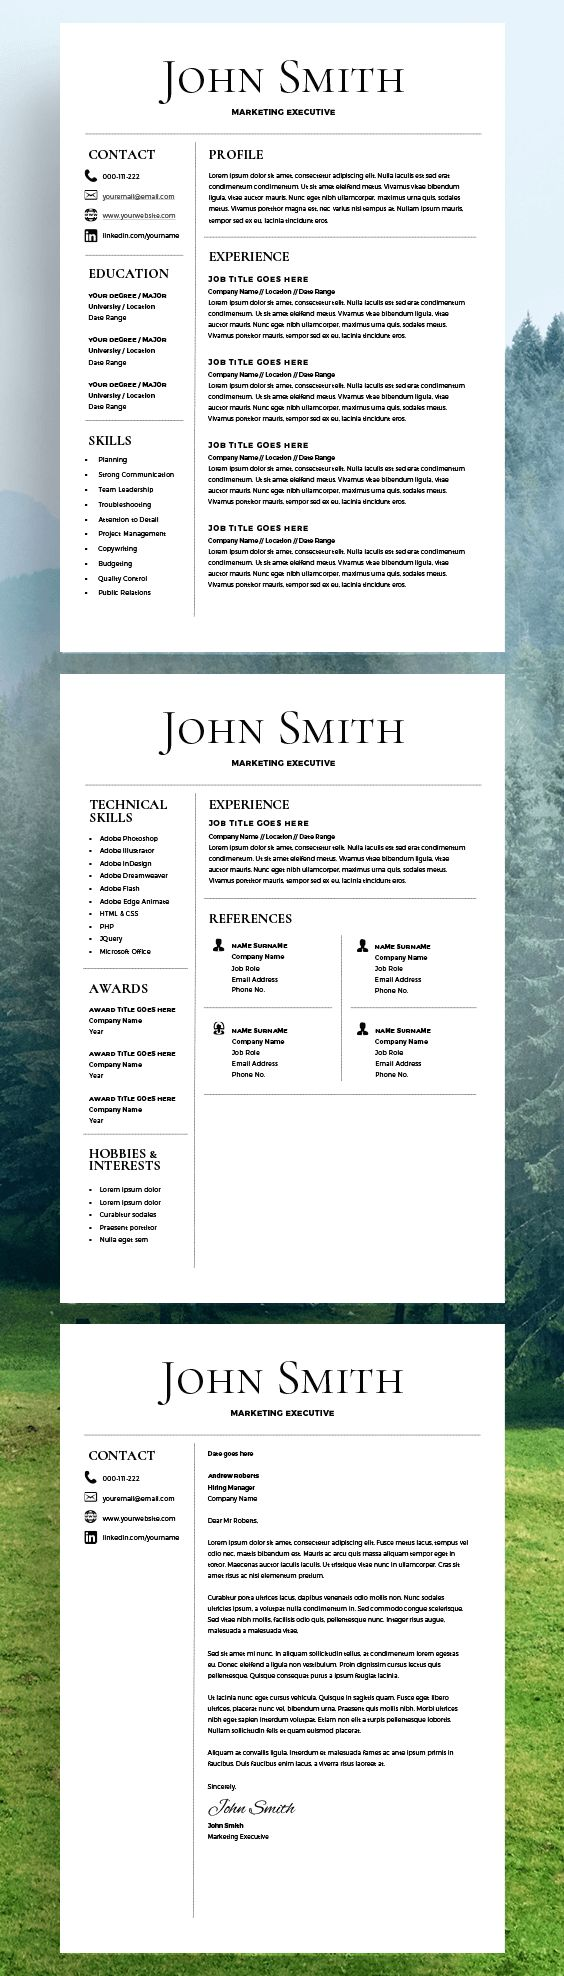 resume template cv template free cover letter ms word on mac pc - Good Template For Resume